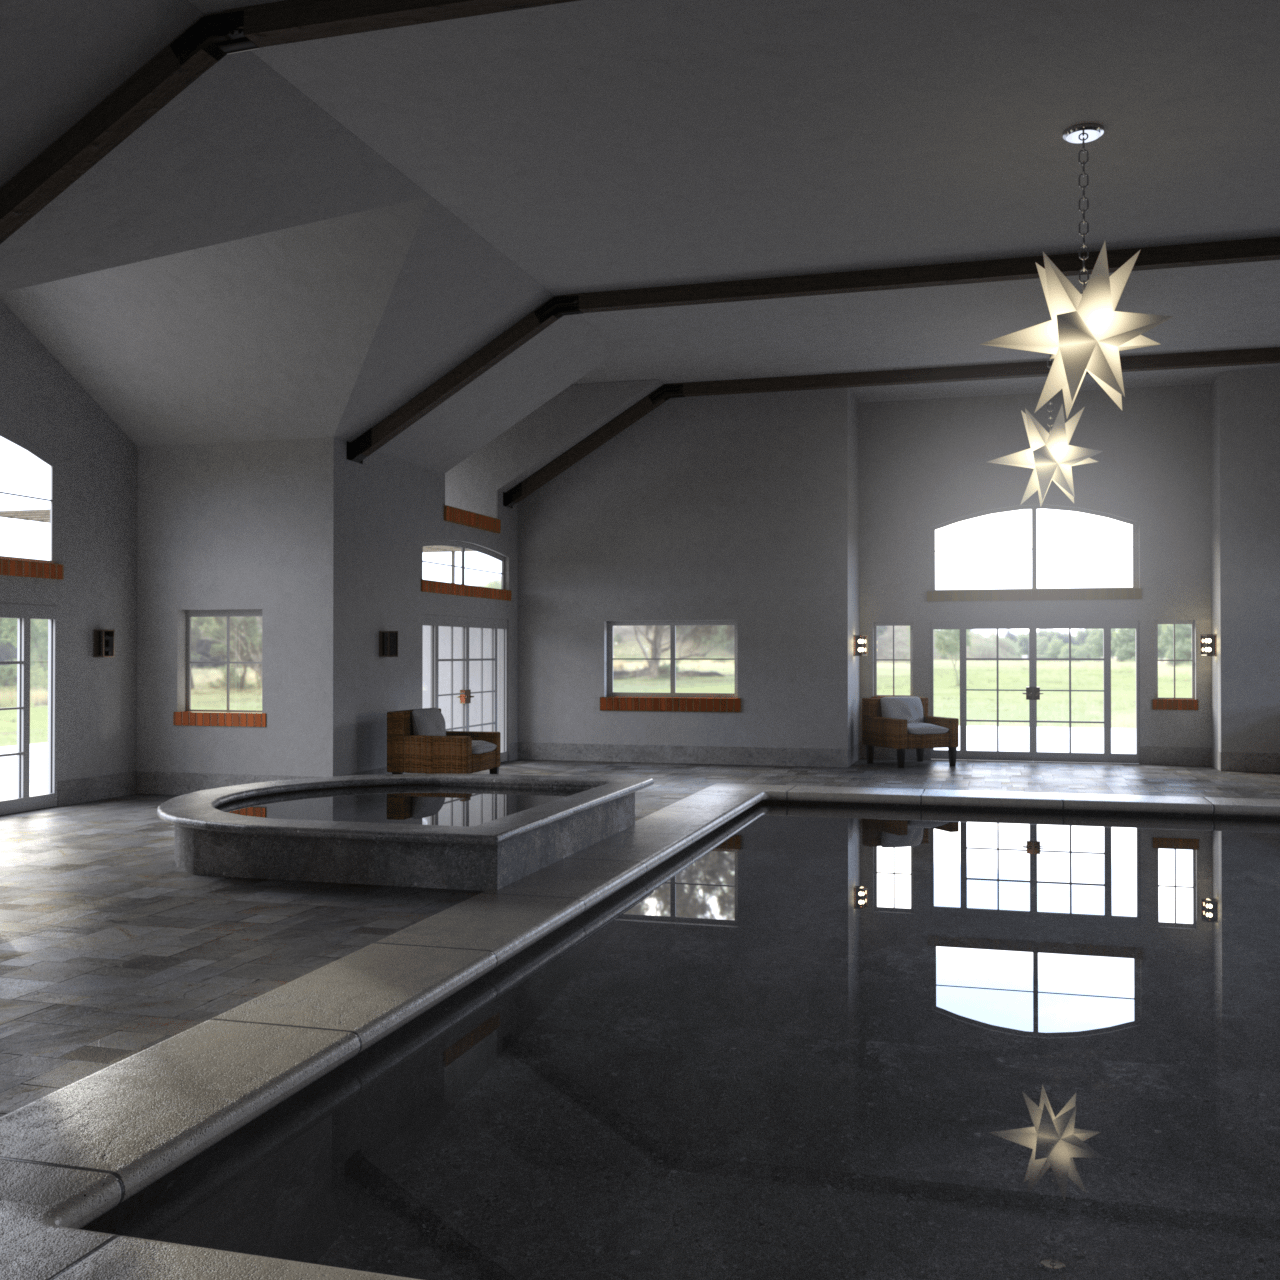 Pool house 3d rendering showing a spacious swimming pool including a small Jacuzzi